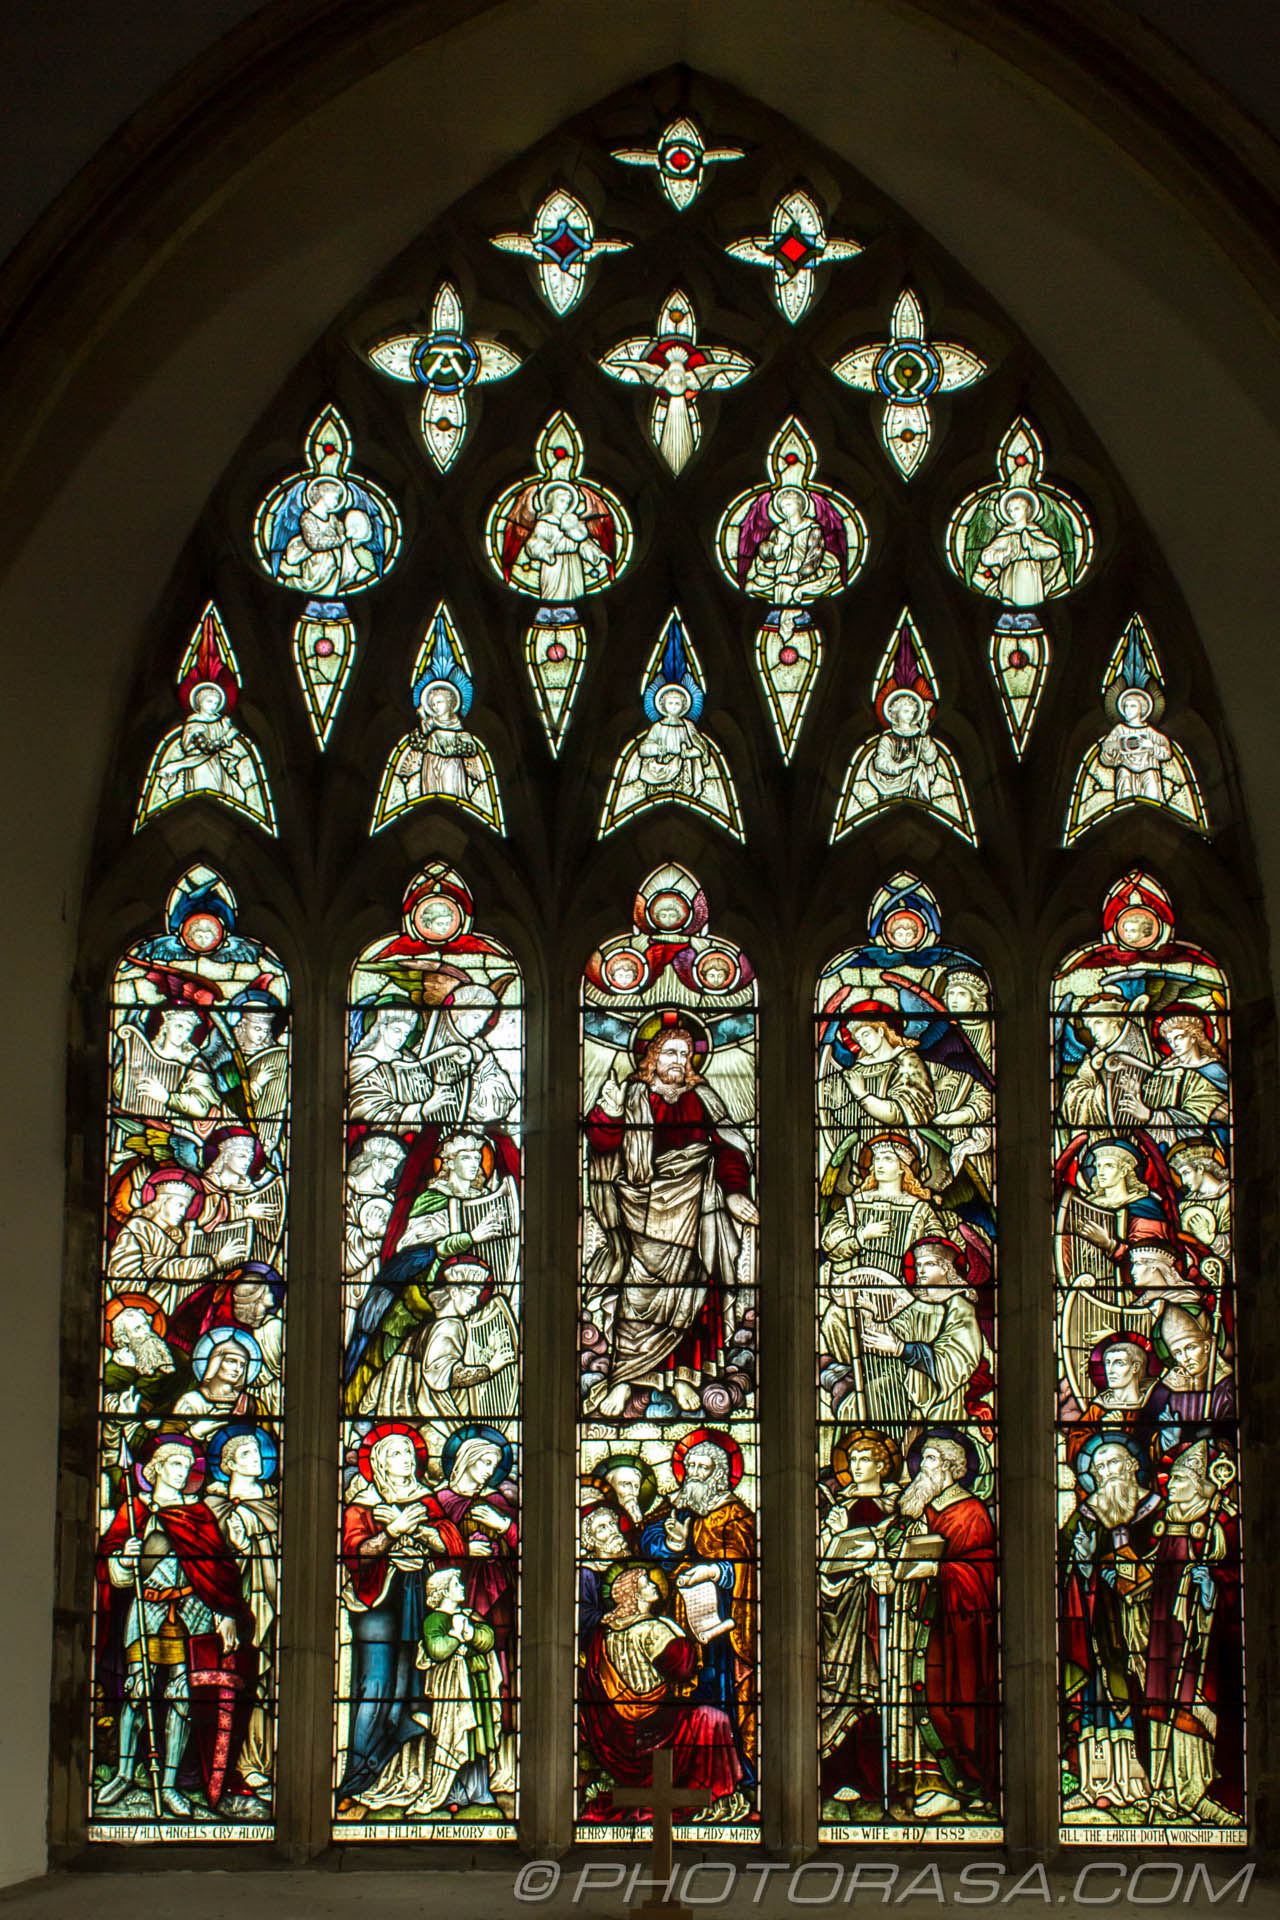 http://photorasa.com/saints-church-staplehurst-kent/stained-glass-of-jesus-surrounded-by-angels-and-saints/